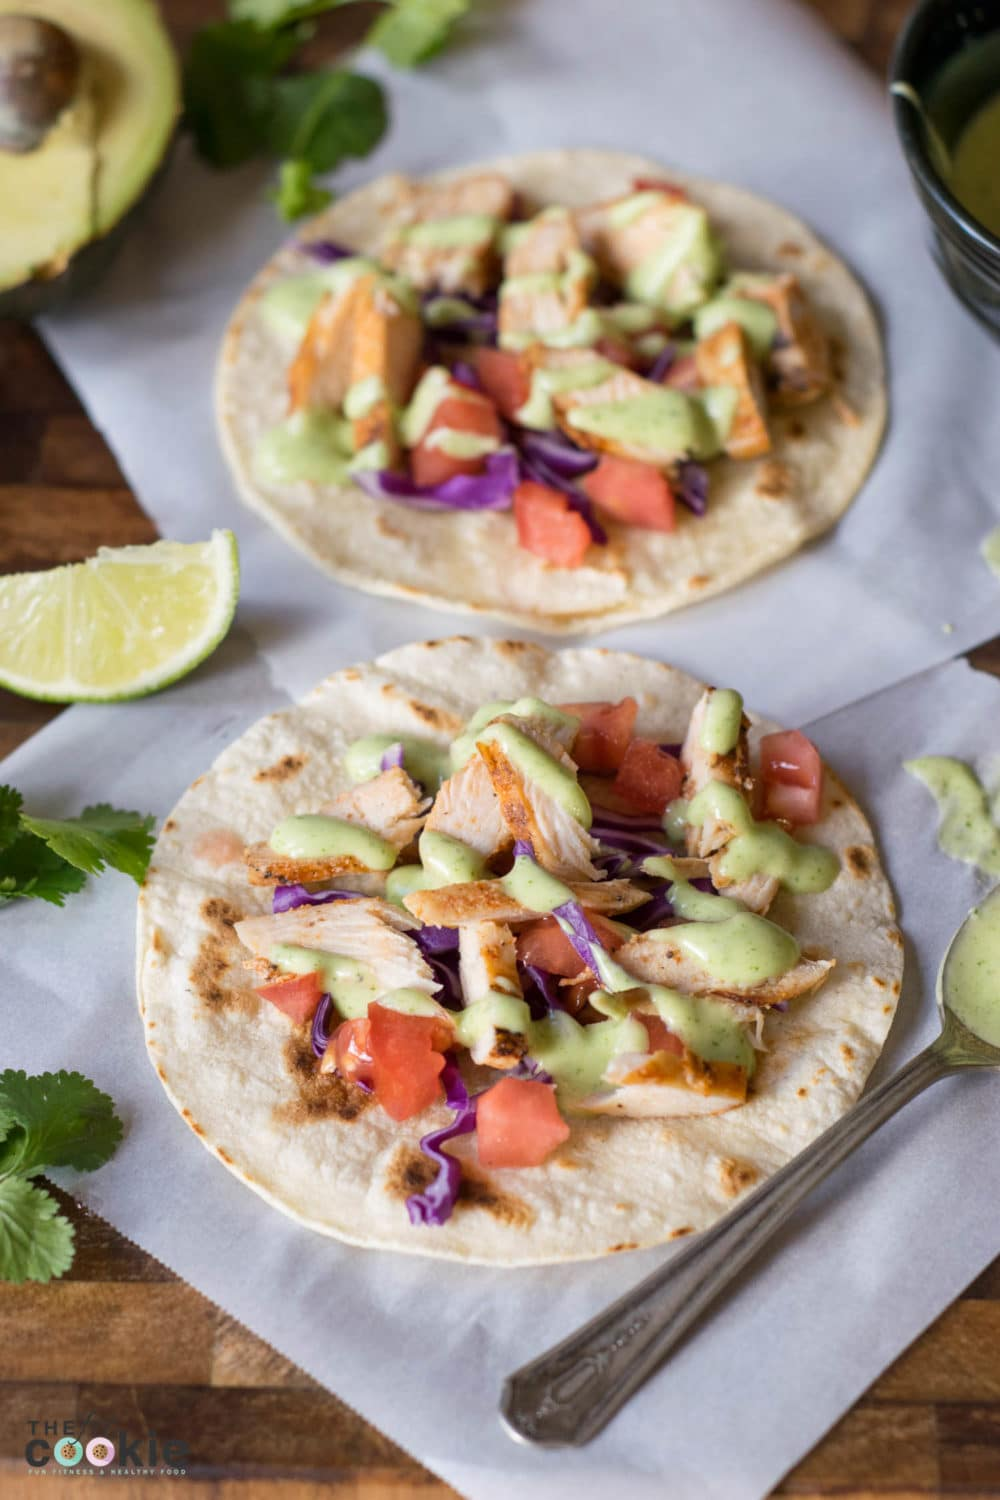 These Grilled Chicken Tacos with Cilantro Crema make a quick, healthy, and allergy-friendly weeknight meal if you use leftover grilled chicken! These are gluten-free, dairy-free, and nut-free, simple, and AMAZING! | thefitcookie.com #dairyfree #glutenfree #tacos